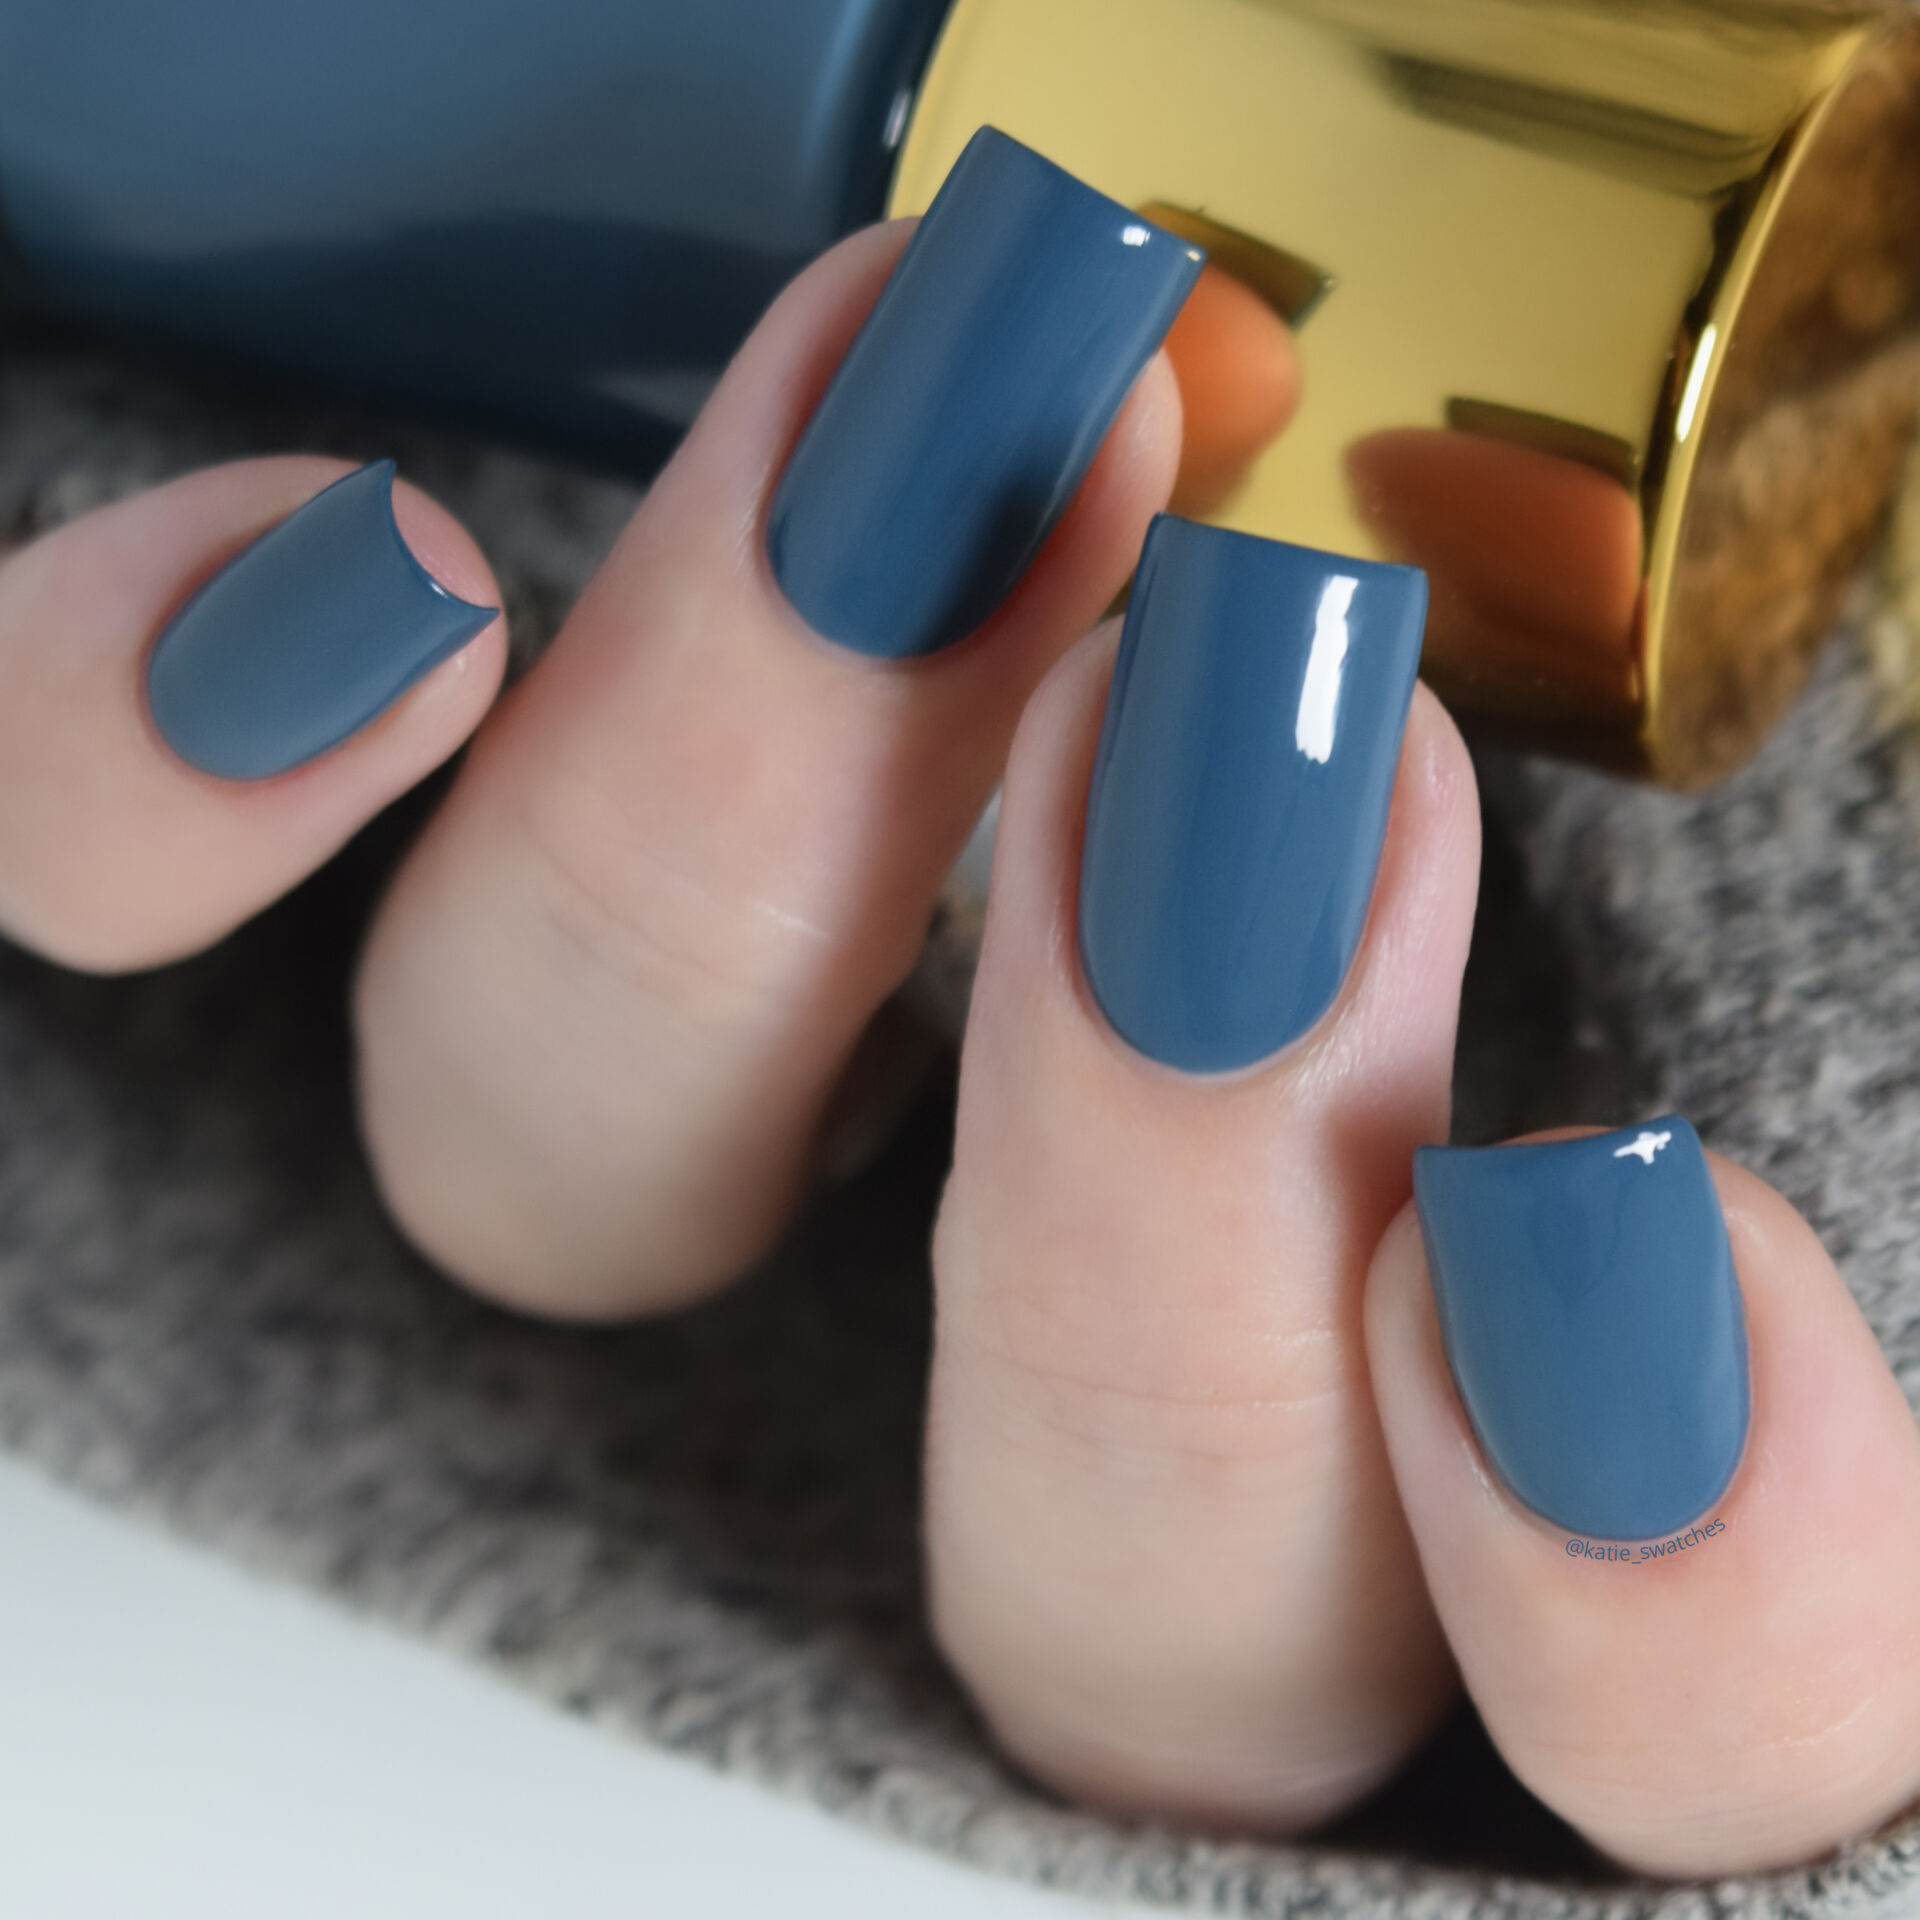 Tripe O Polish - Oyo denim blue creme nail polish swatch